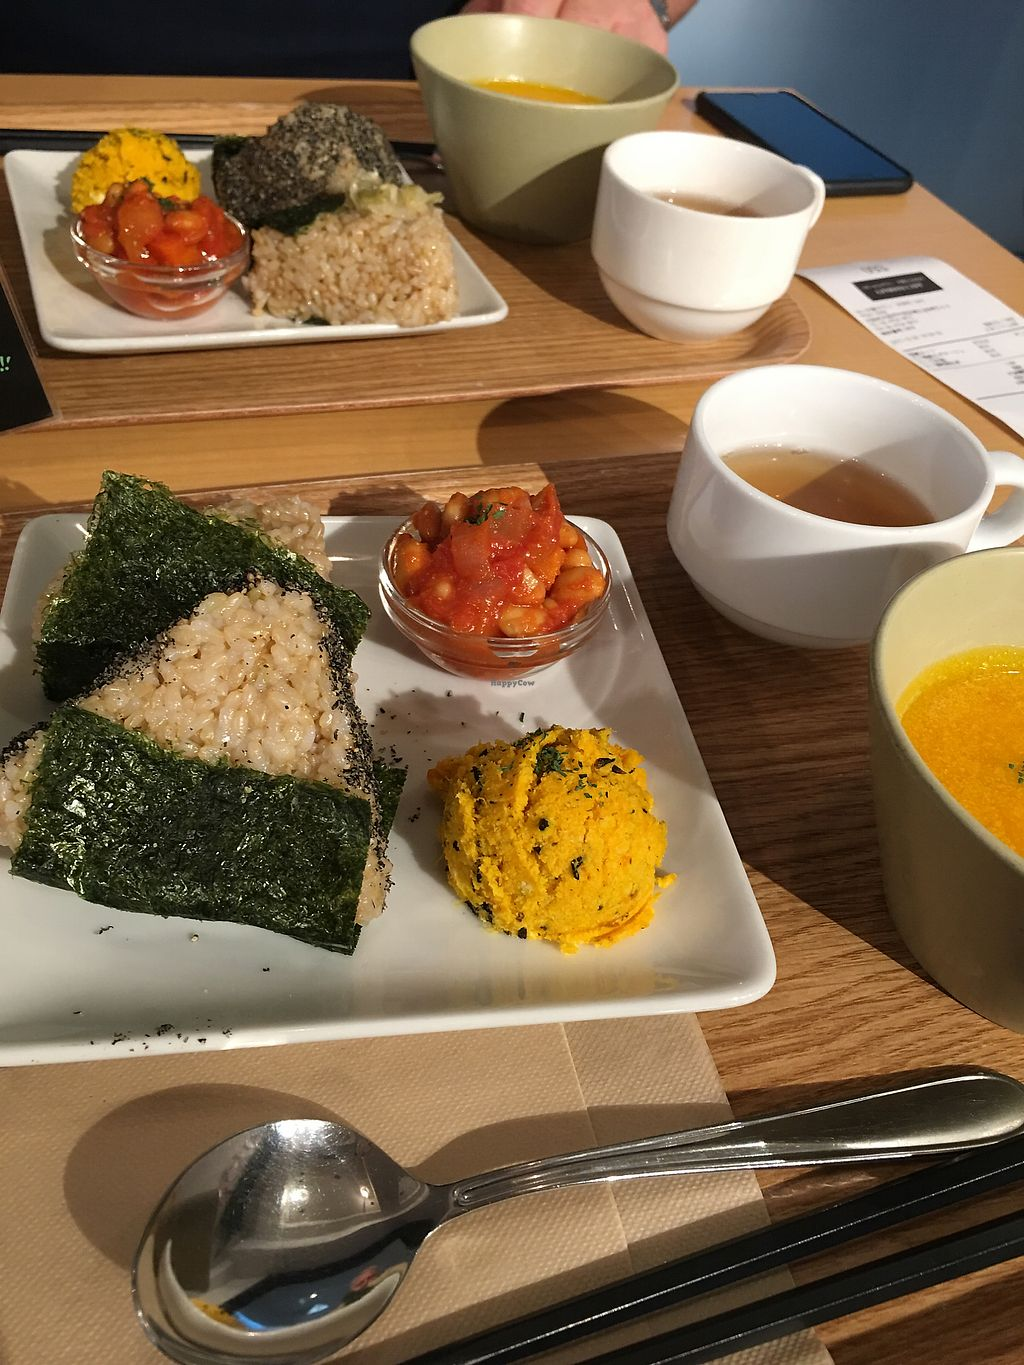 """Photo of Genmai Cafe  by <a href=""""/members/profile/KisaraVera"""">KisaraVera</a> <br/>So freaking awesome ??  <br/> December 25, 2017  - <a href='/contact/abuse/image/34757/339006'>Report</a>"""